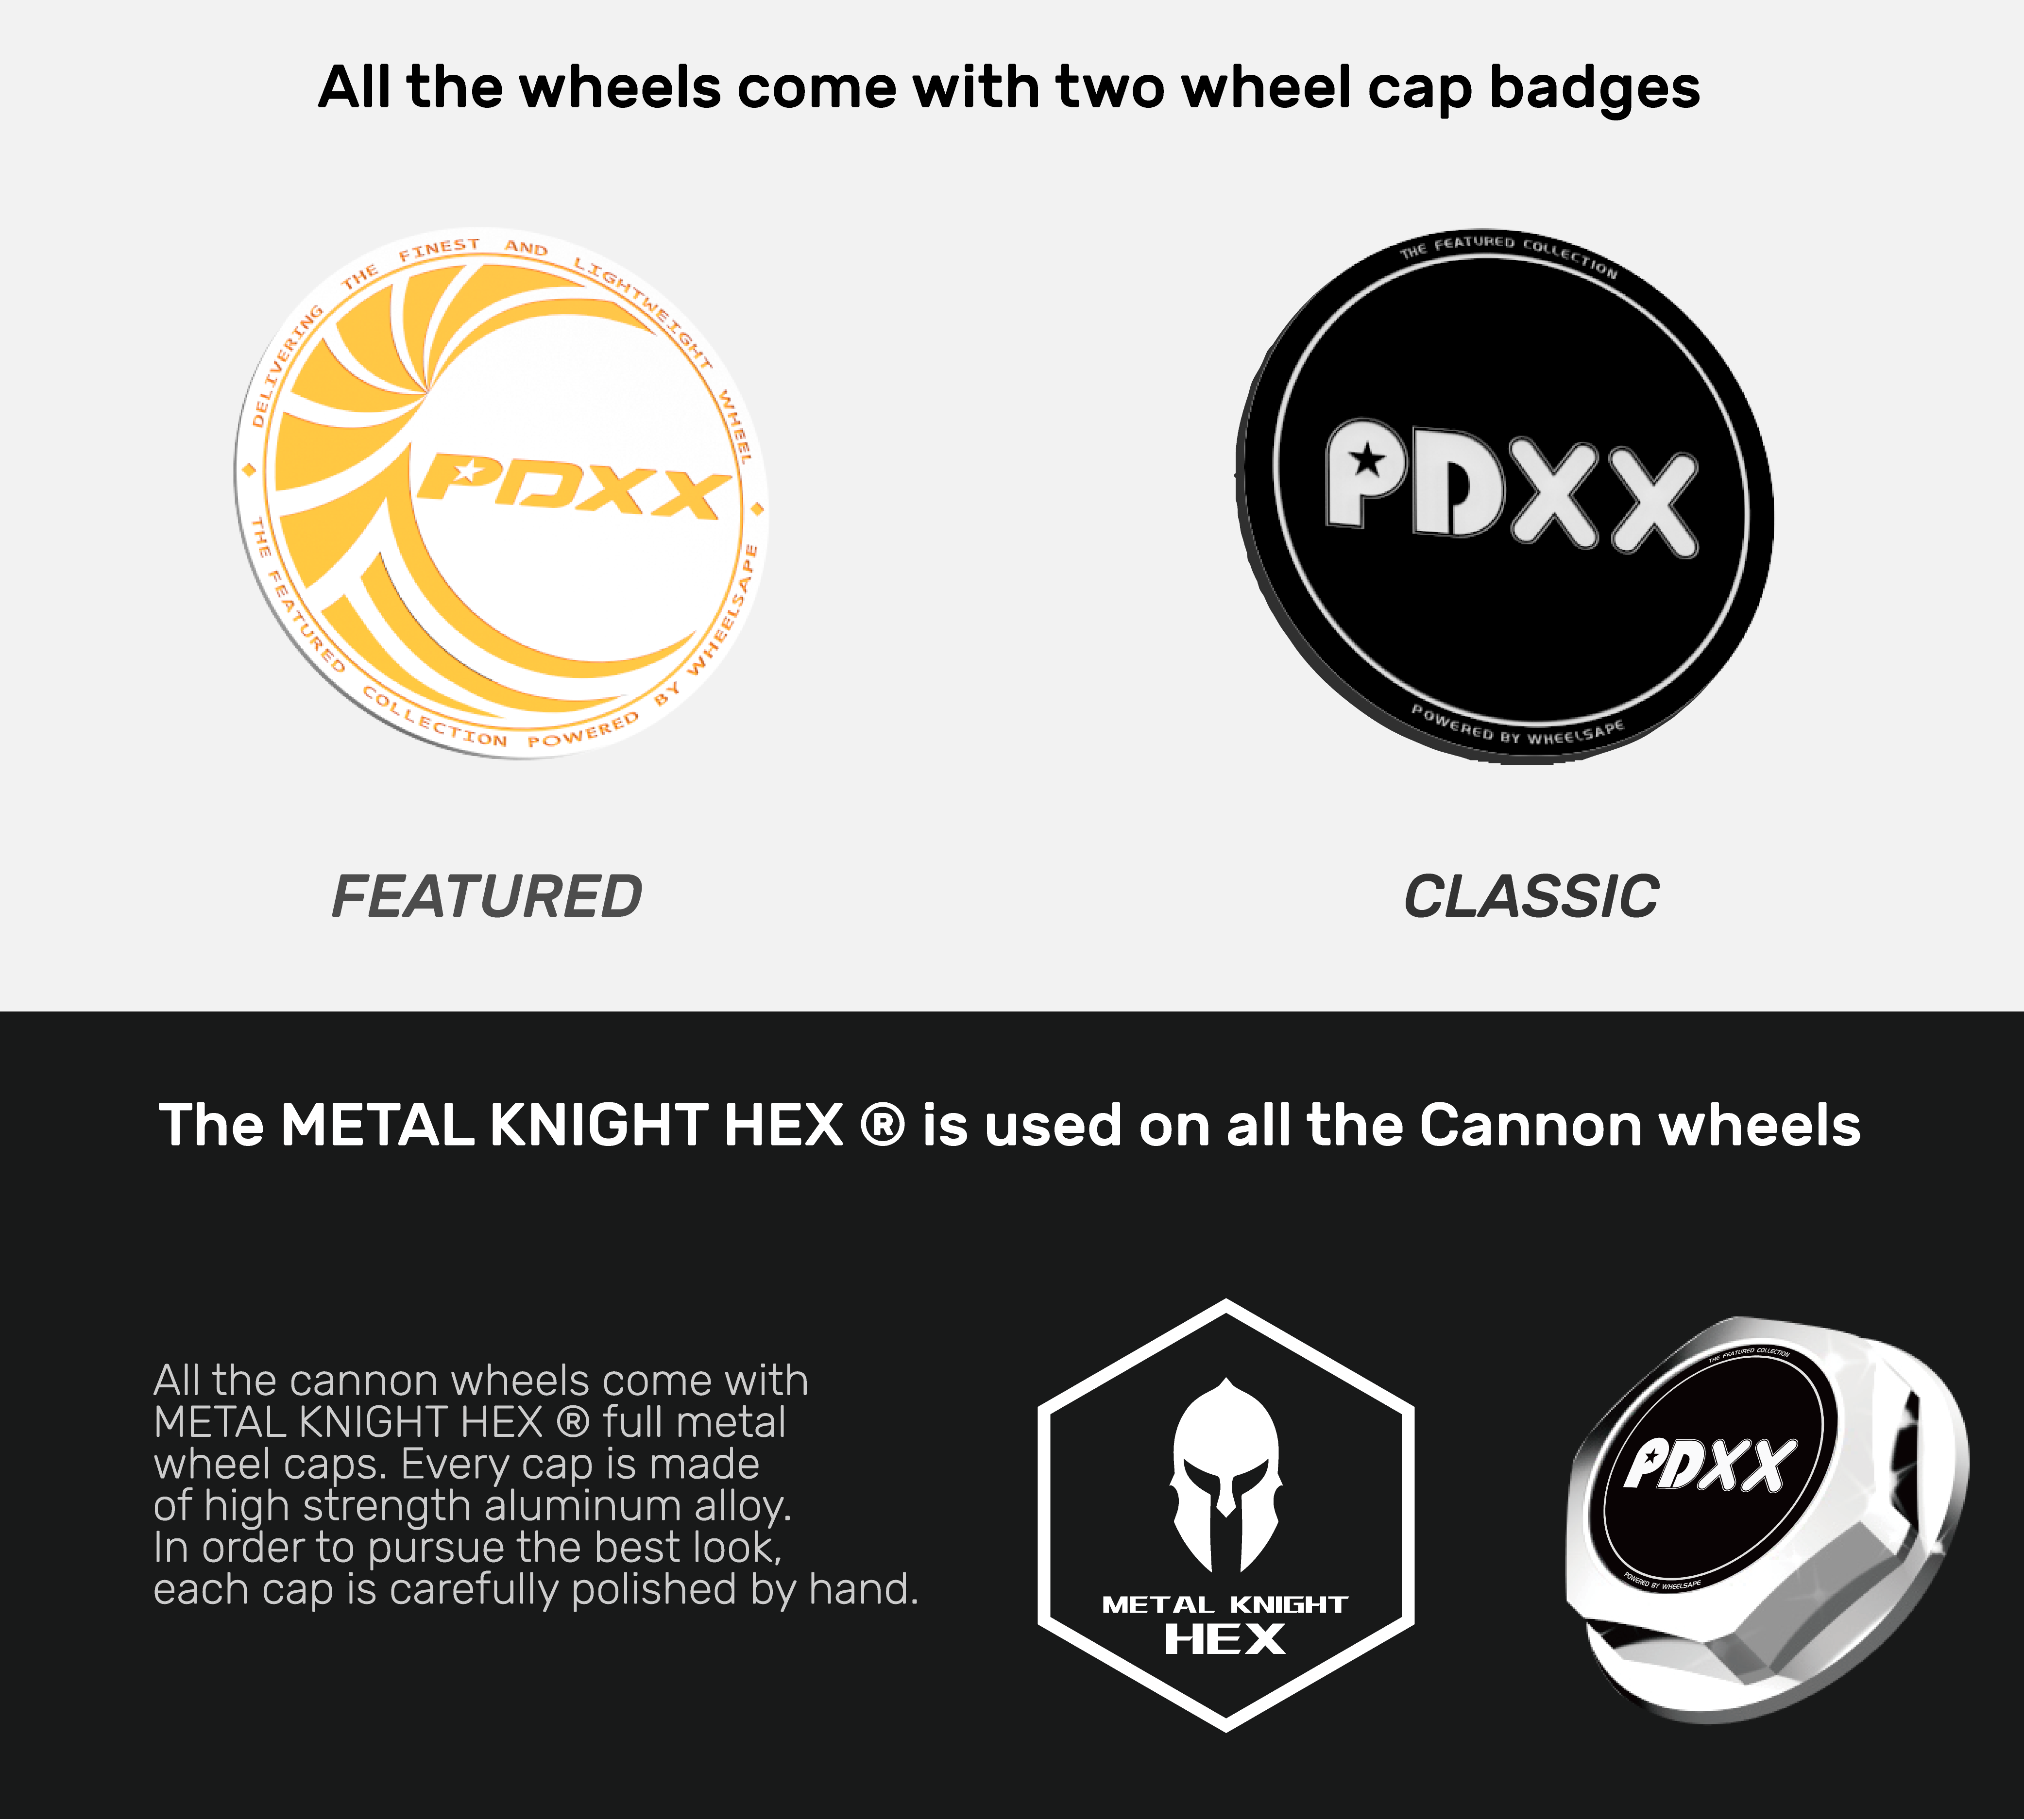 pdxx-metal-knig-hex-cannon-01.png